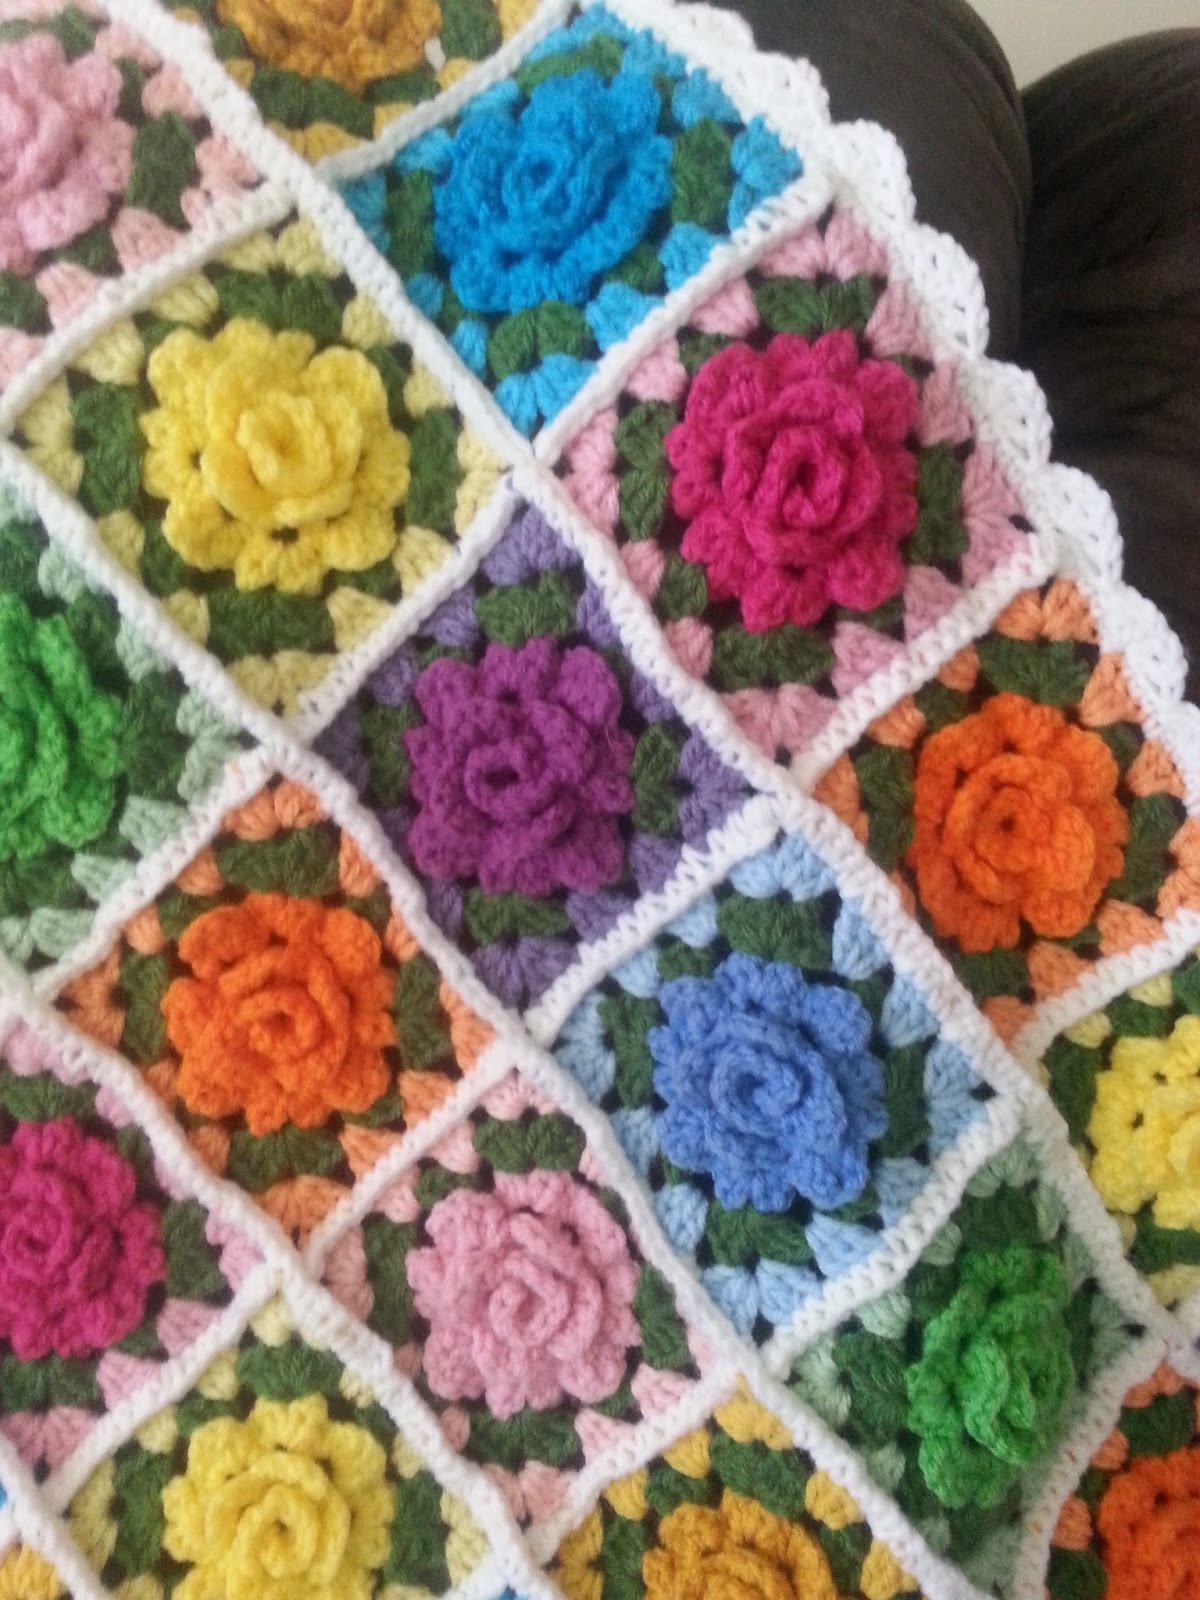 Apple Blossom Dreams: More of My Homies Granny Rose Afghans!